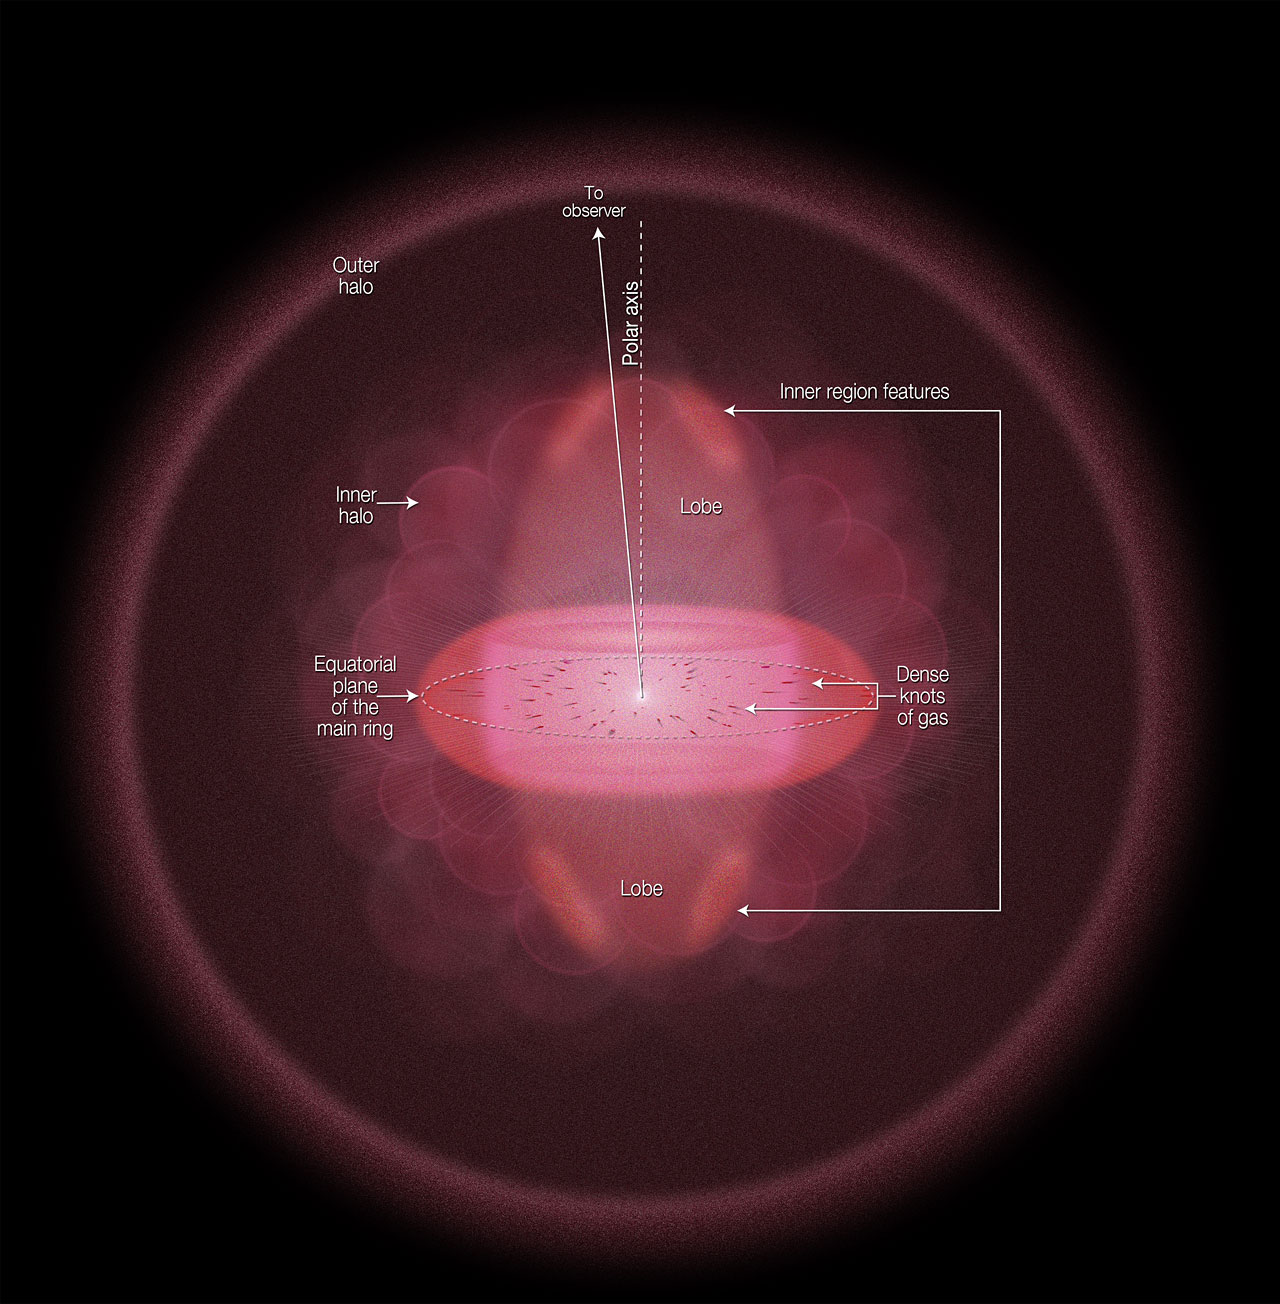 Geometry and structure of the Ring Nebula